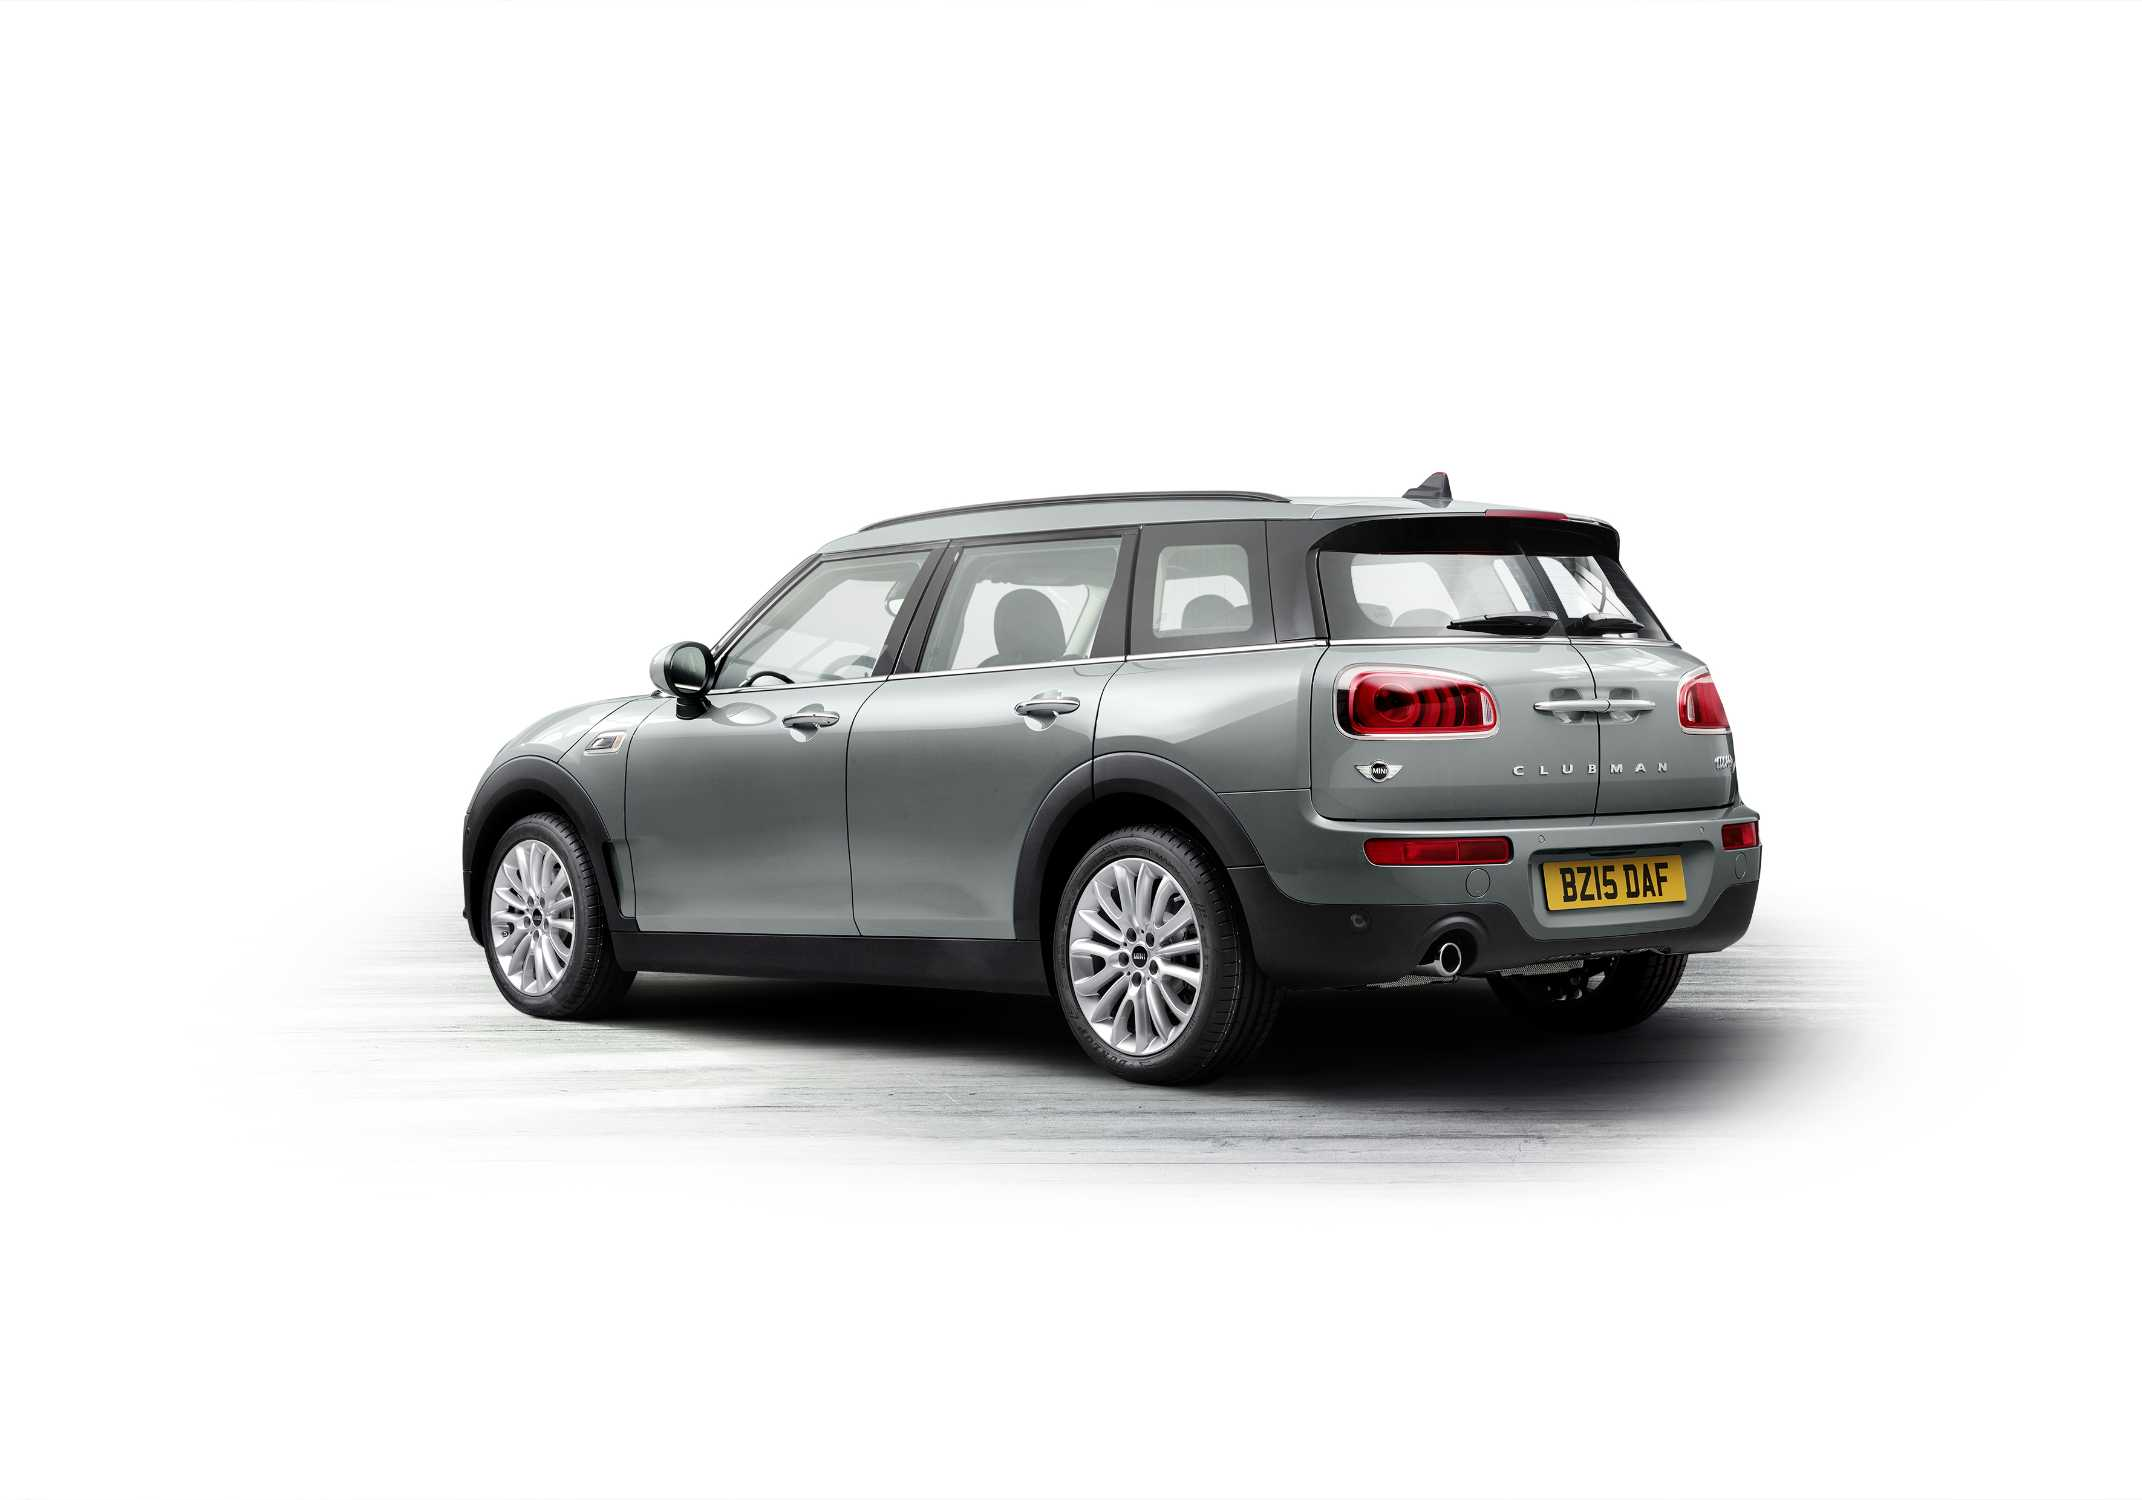 the new mini clubman moonwalk grey metallic 06 2015. Black Bedroom Furniture Sets. Home Design Ideas